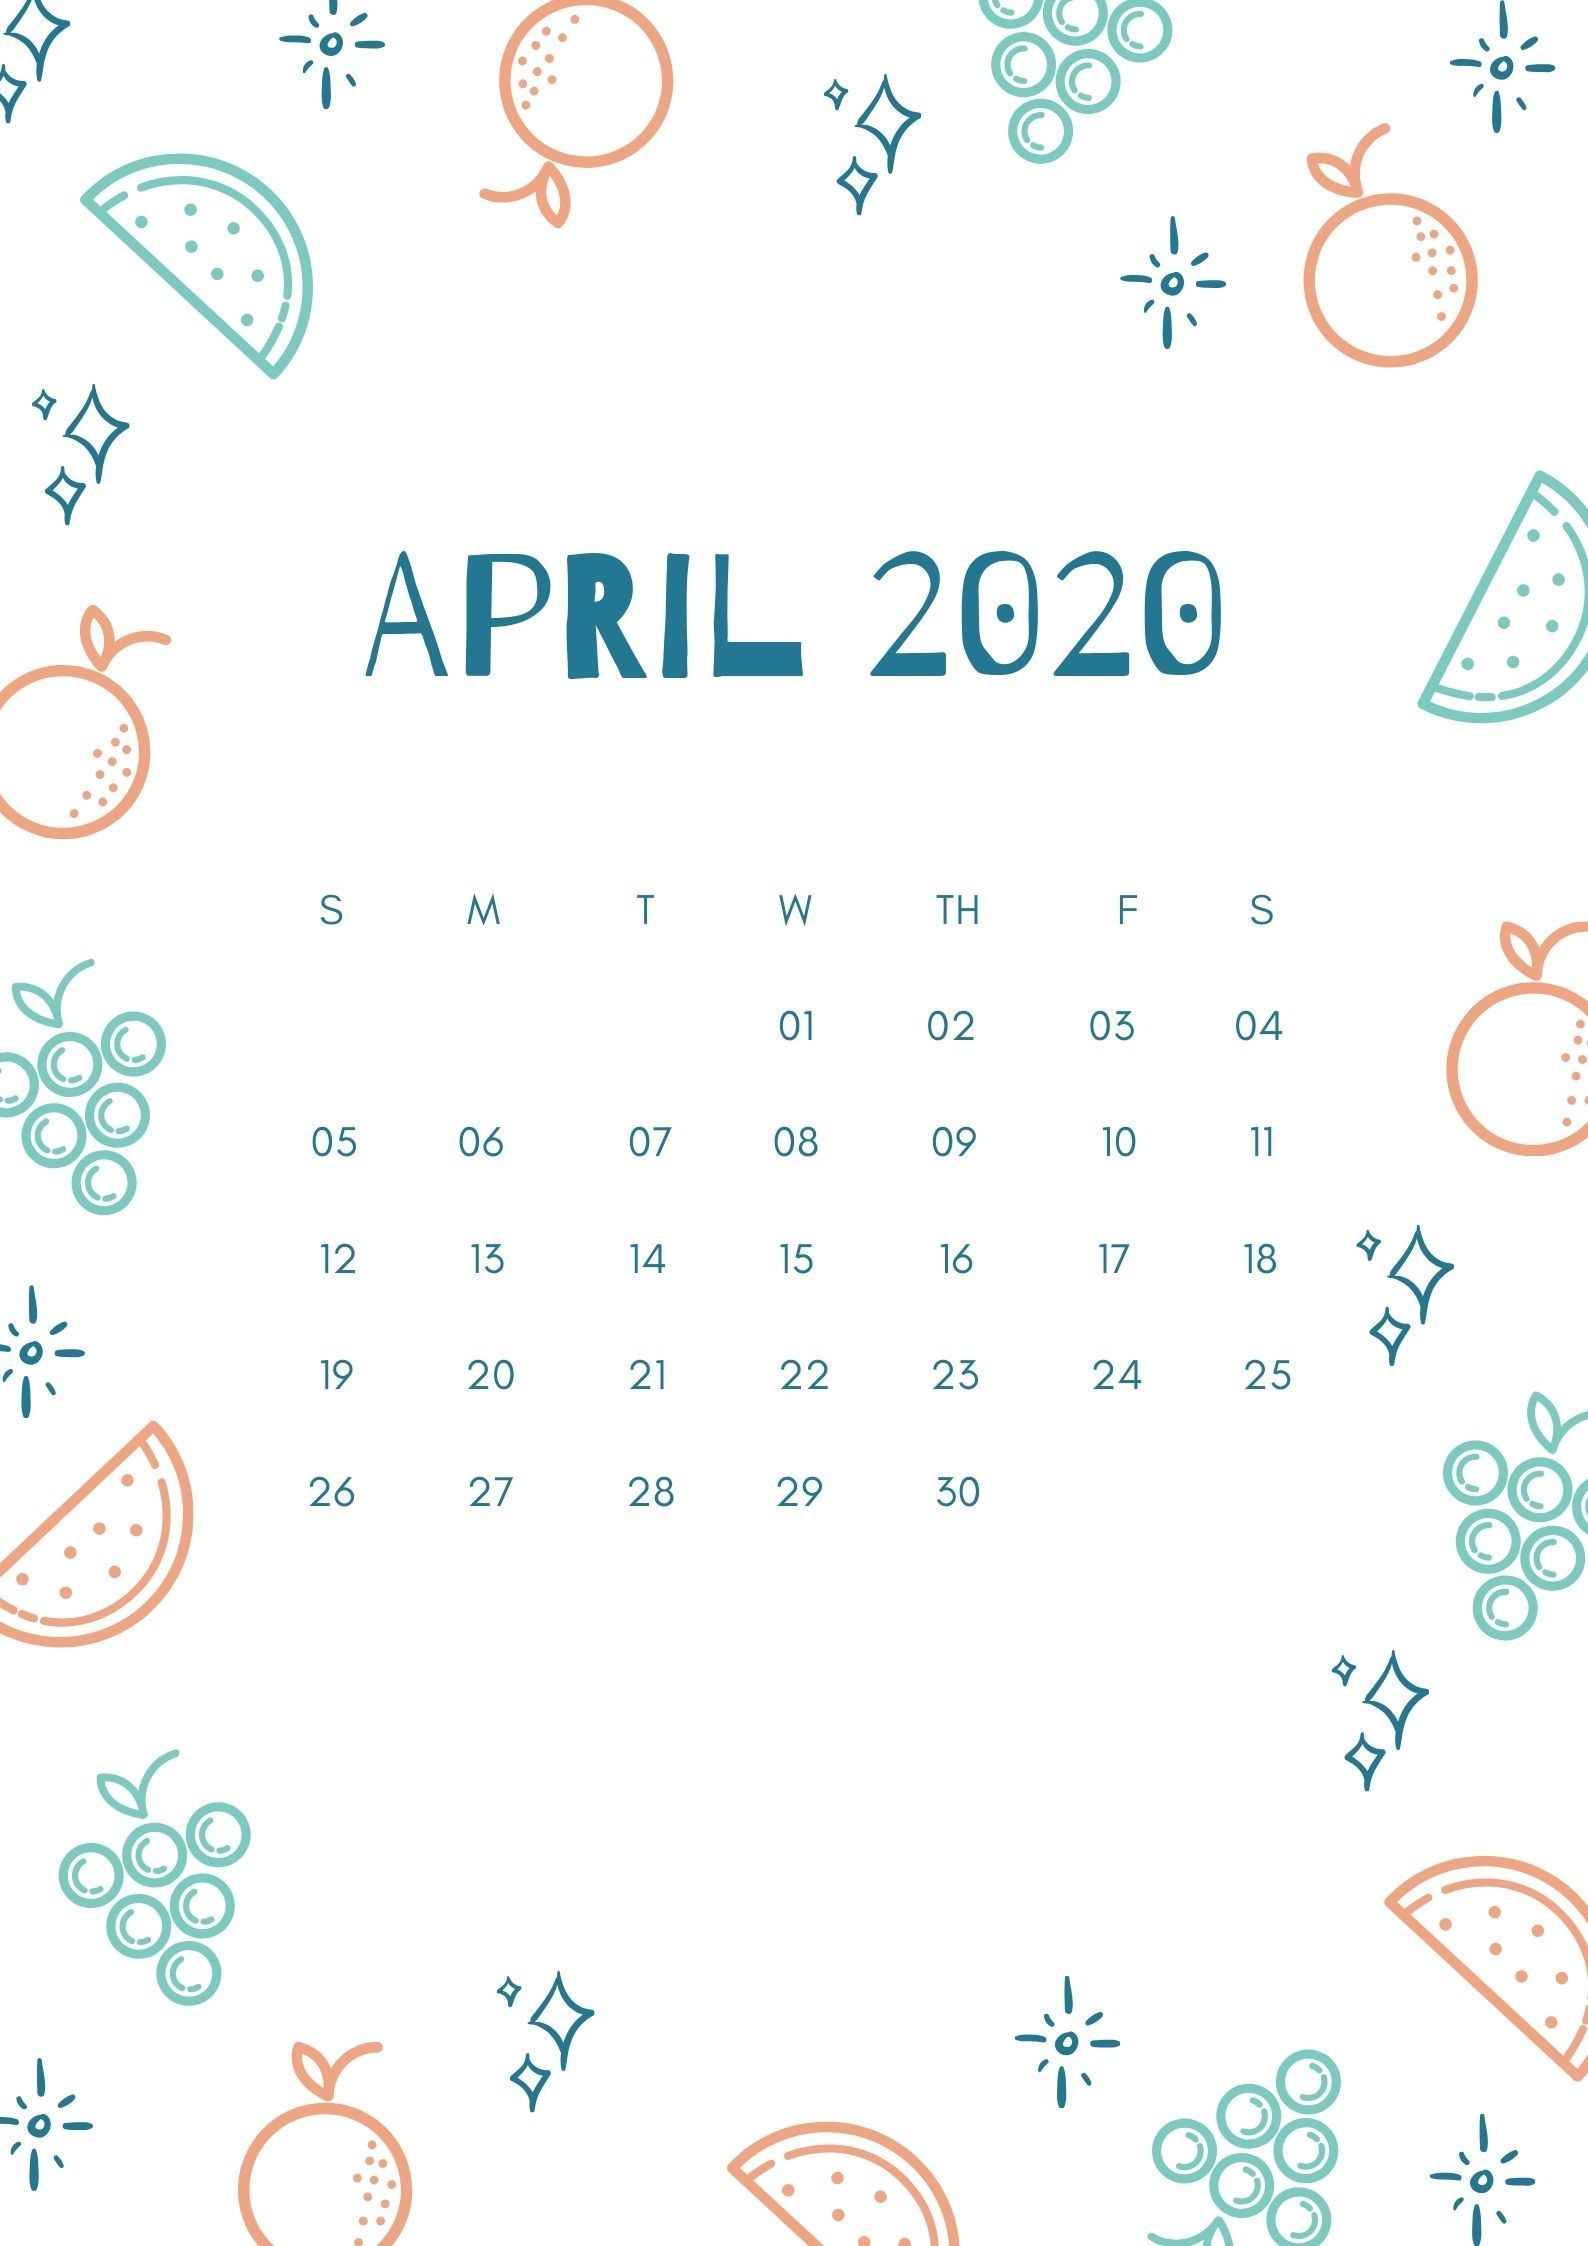 April 2020 Calendar iPhone Wallpaper   August 2019 Calendar 1588x2246